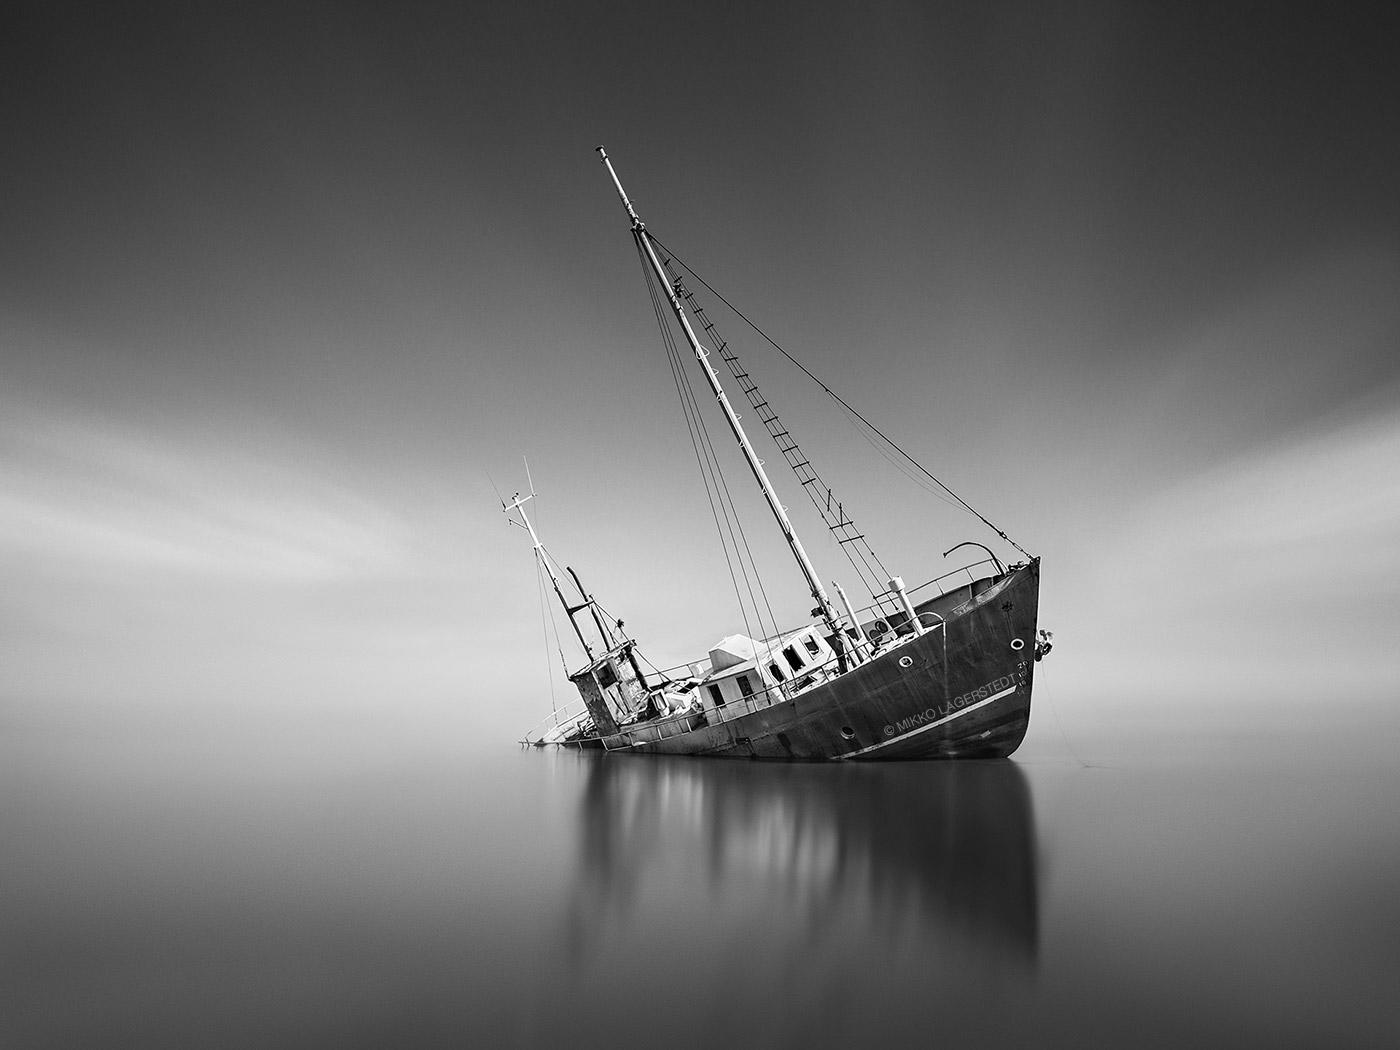 Shipwreck by Mikko Lagerstedt